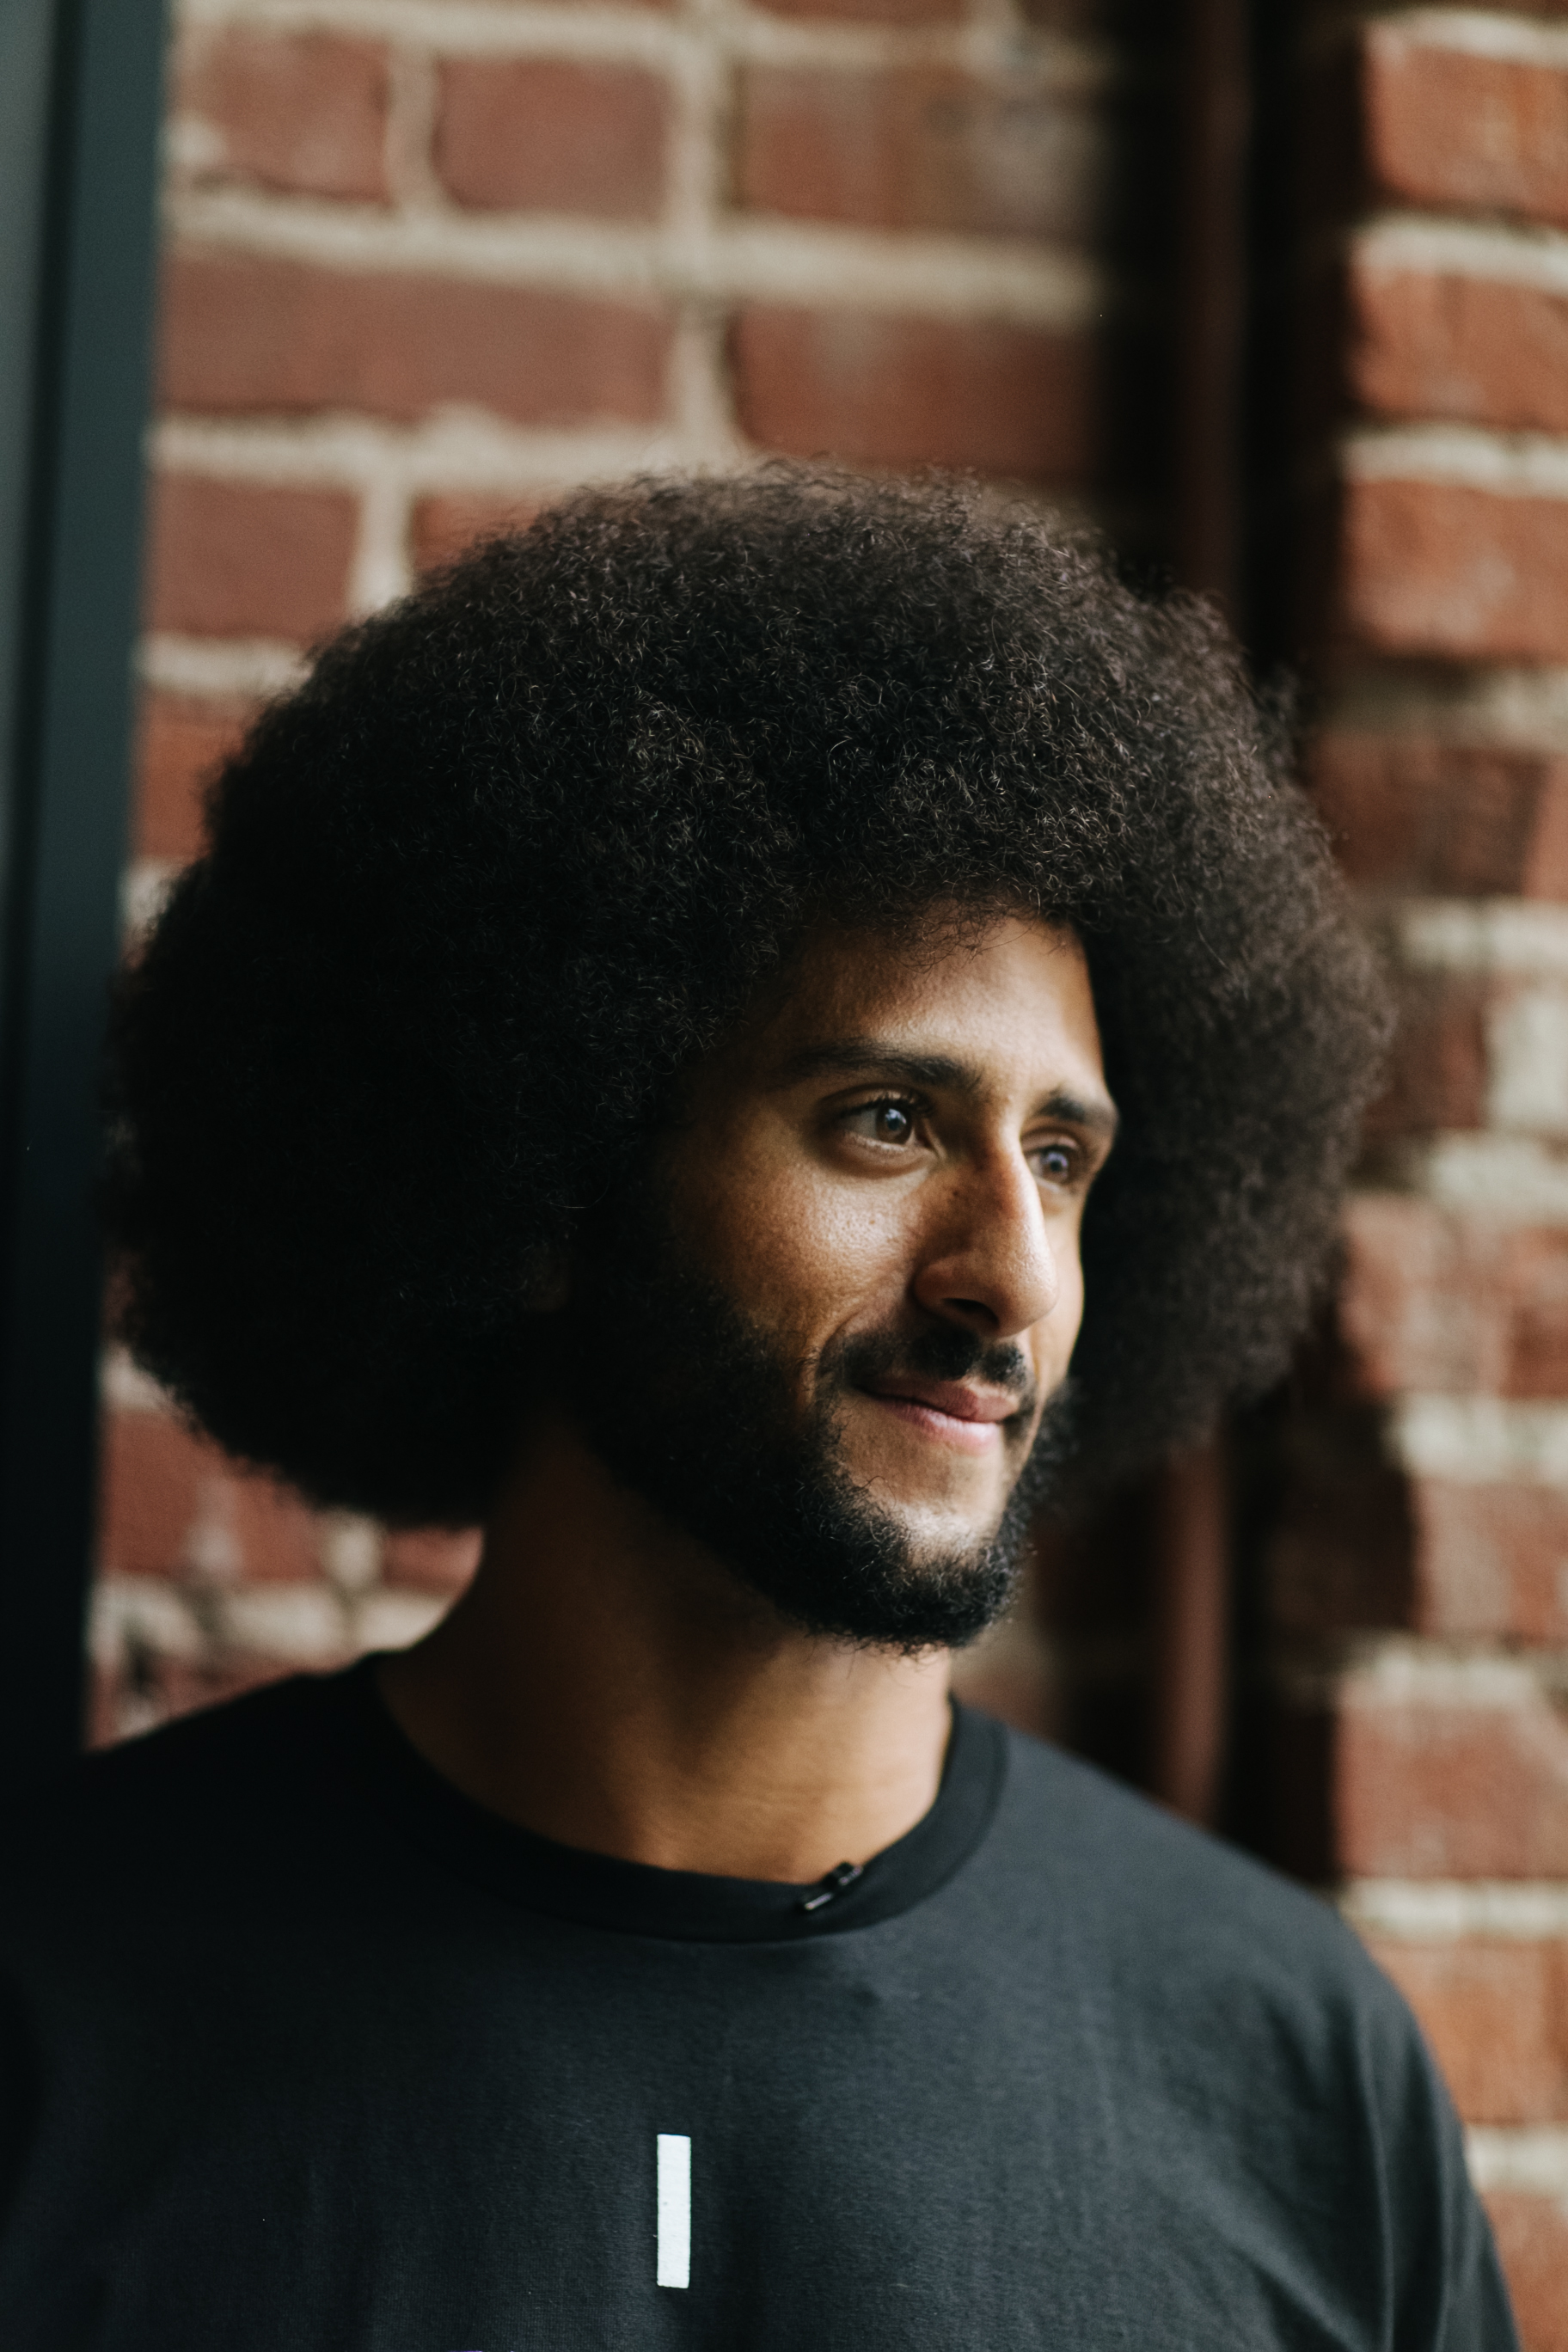 Colin Kaepernick poses for a photo at the HUB Oakland on October 29, 2016 in Oakland, CA. Kaepernick led a discussion with young African American males about their rights, especially when dealing with police officers.